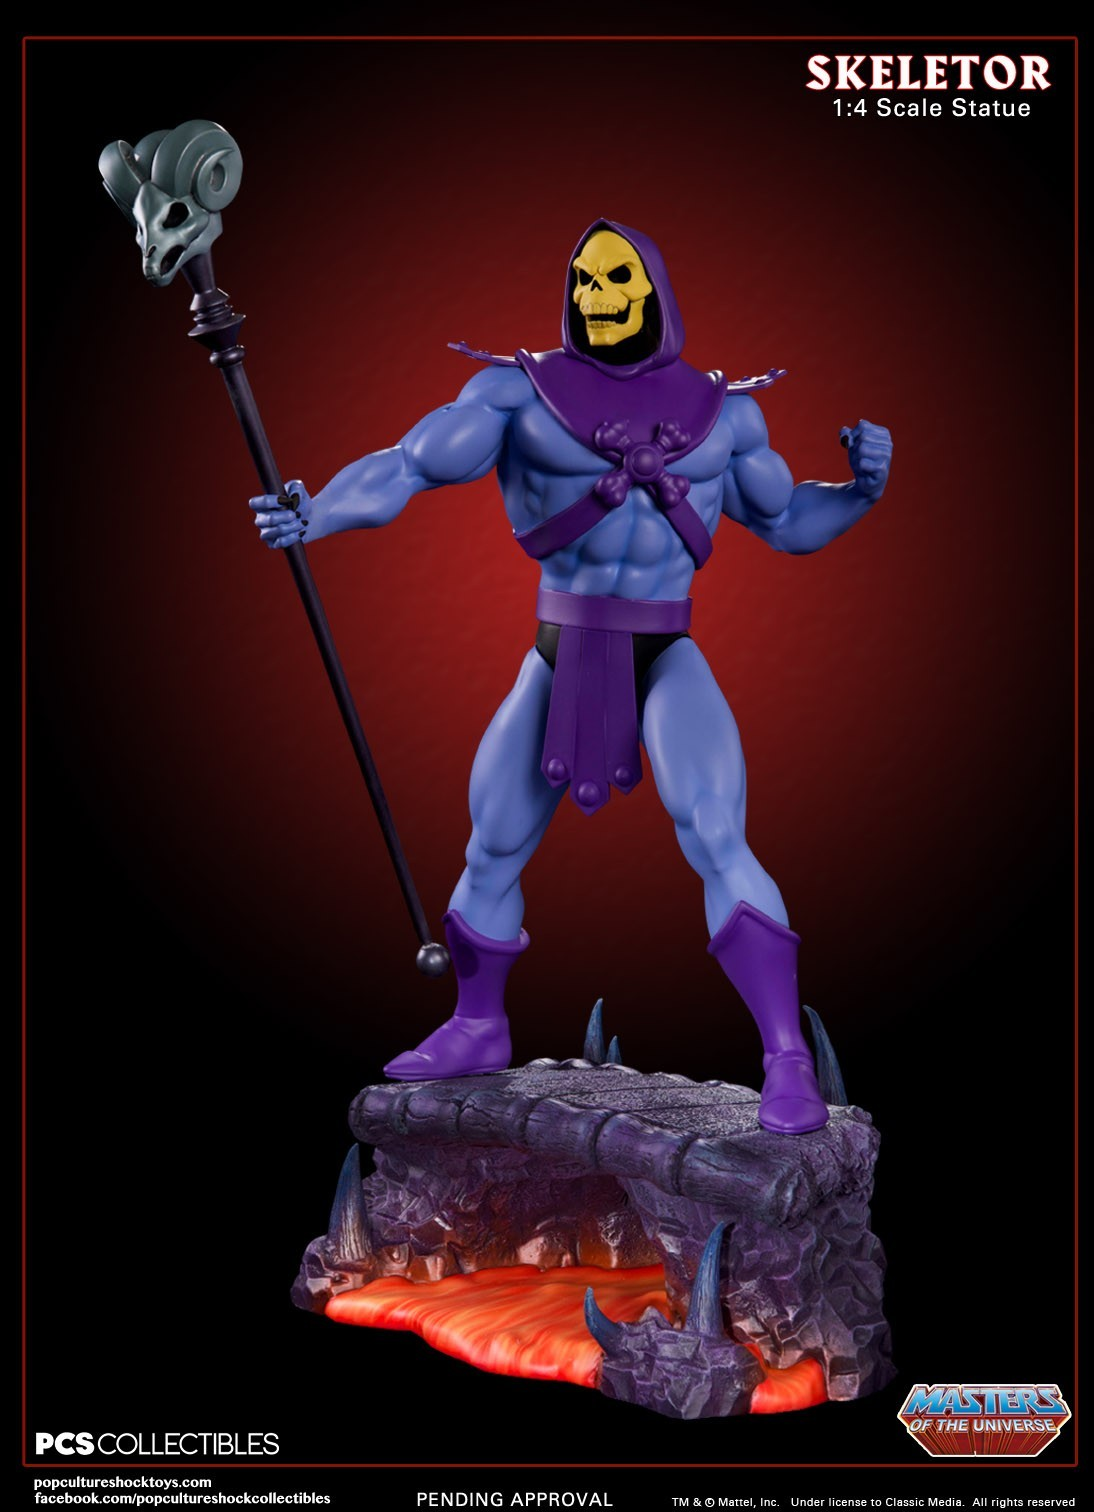 Alejandro pereira skeletor media f 1